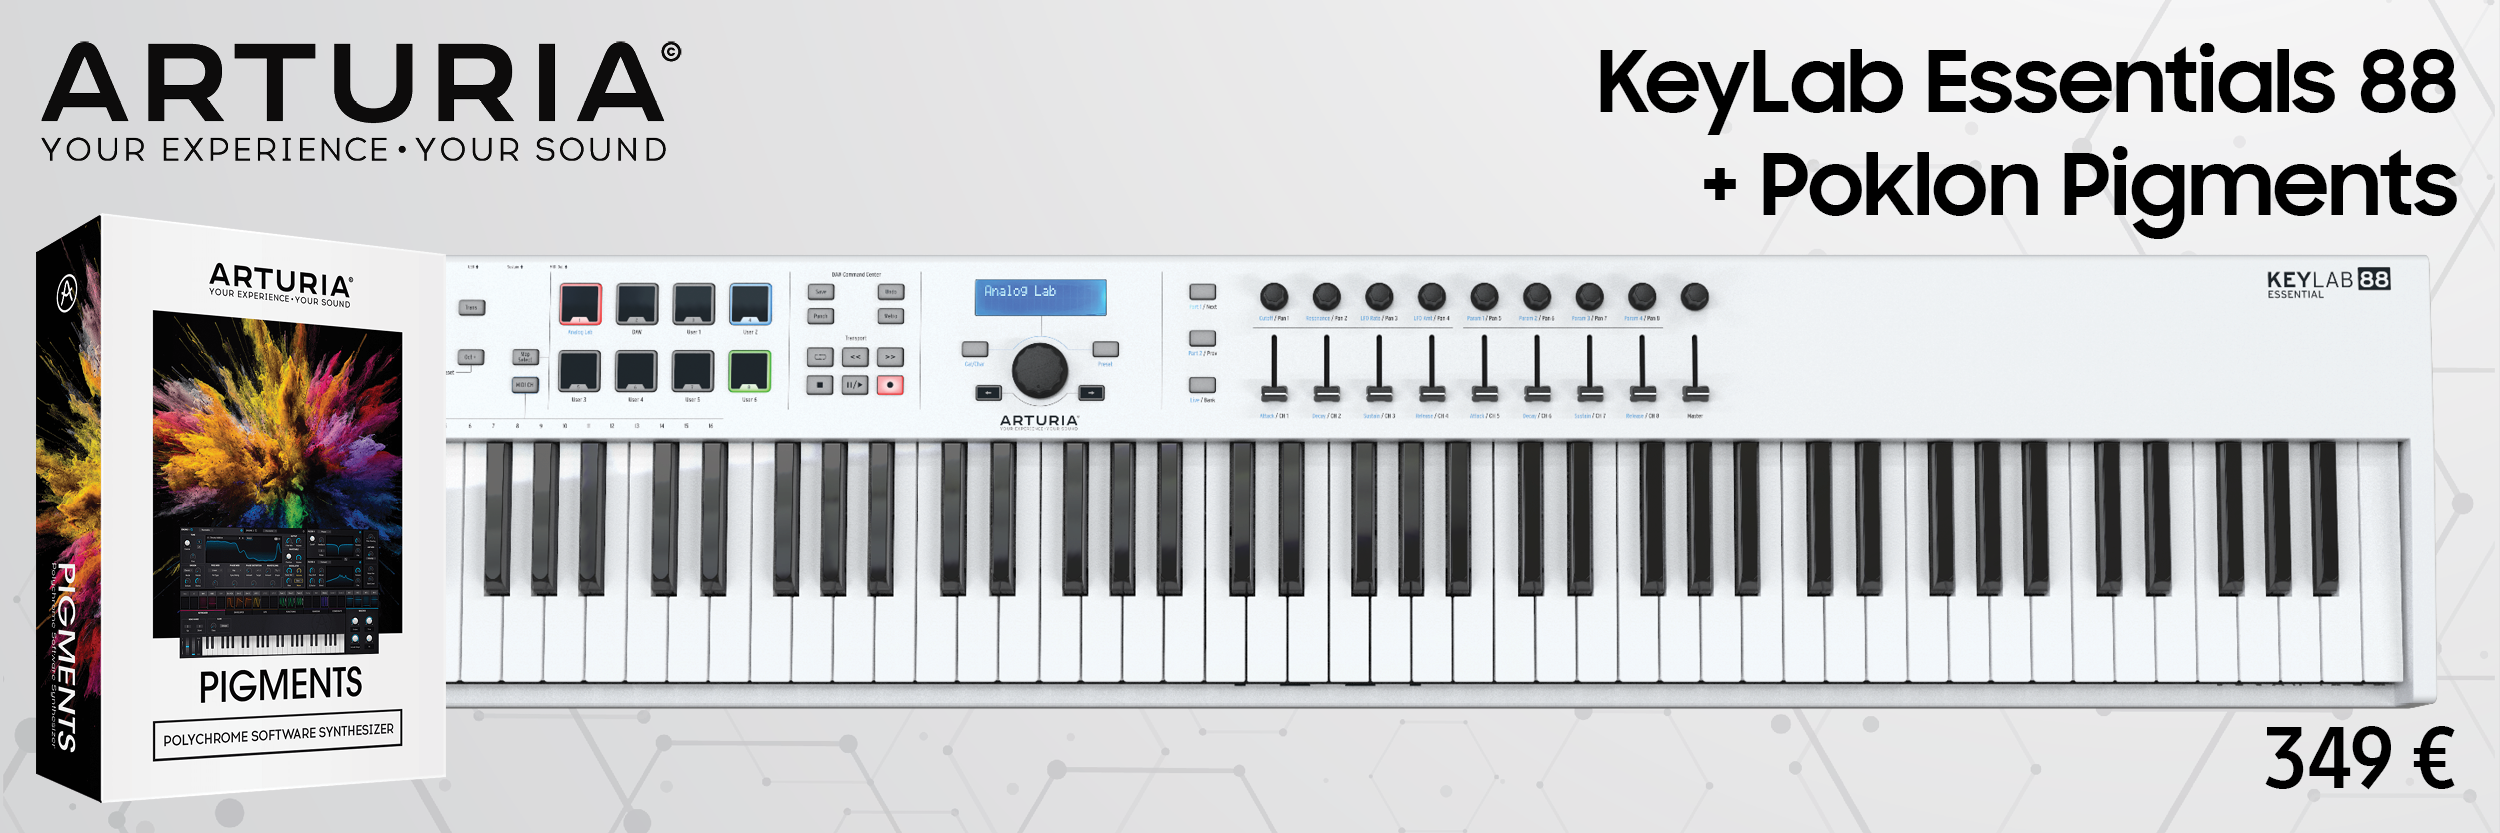 Arturia Keylab Essentials 88 + Pigments